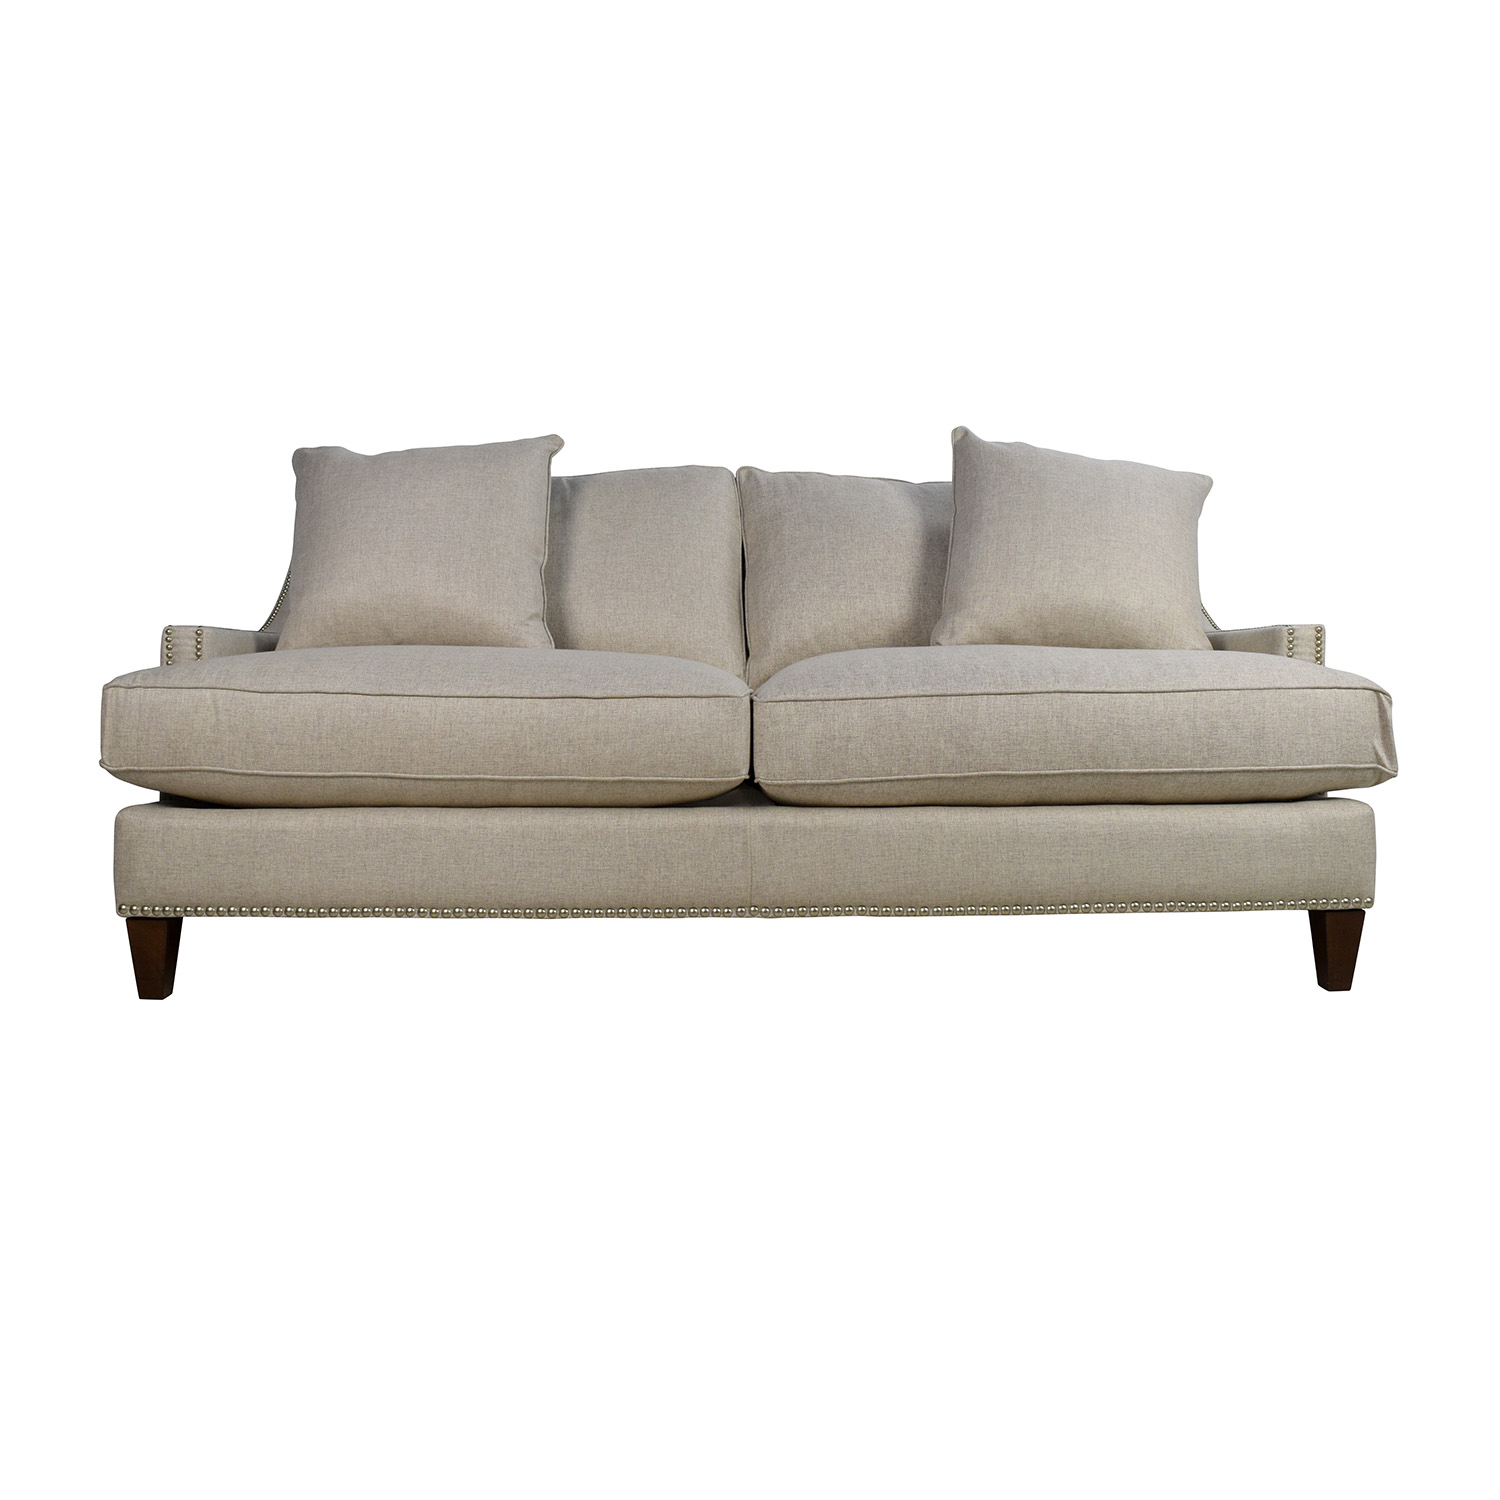 Jennifer Convertibles Jennifer Convertibles Duchess Beige Sofa nj